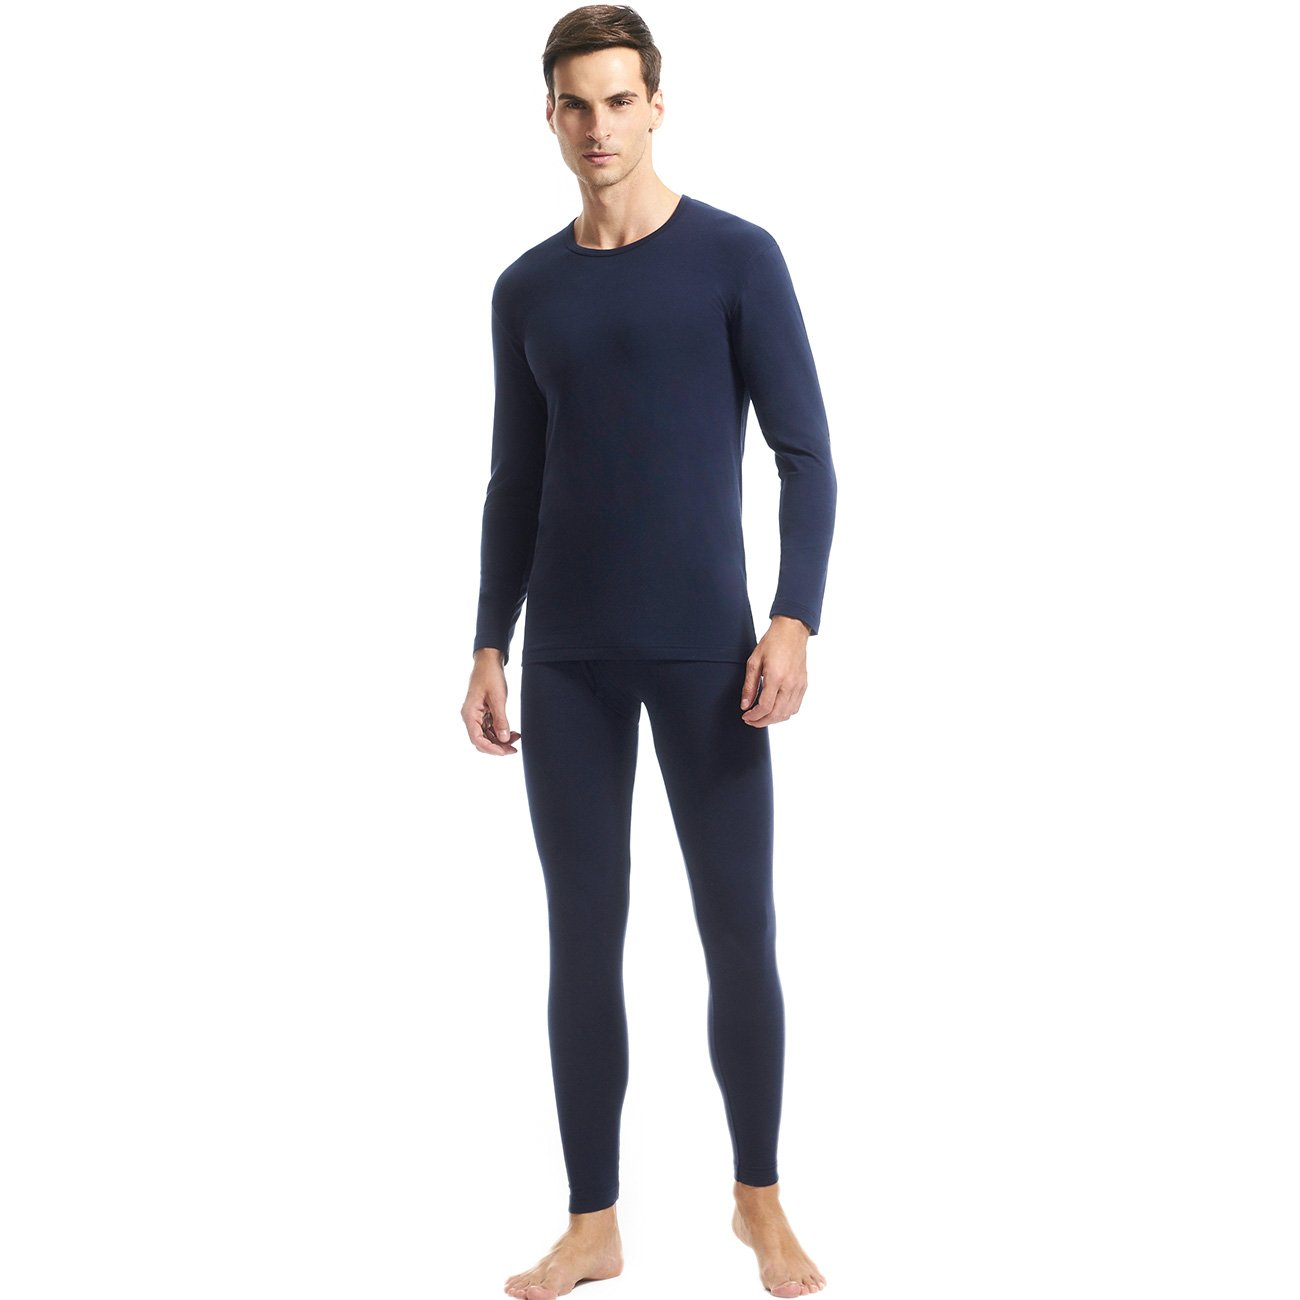 SANQIANG Men's Elastic Lycra Thermal Set Lightweight Ultra Soft Long John Underwears 22155D2